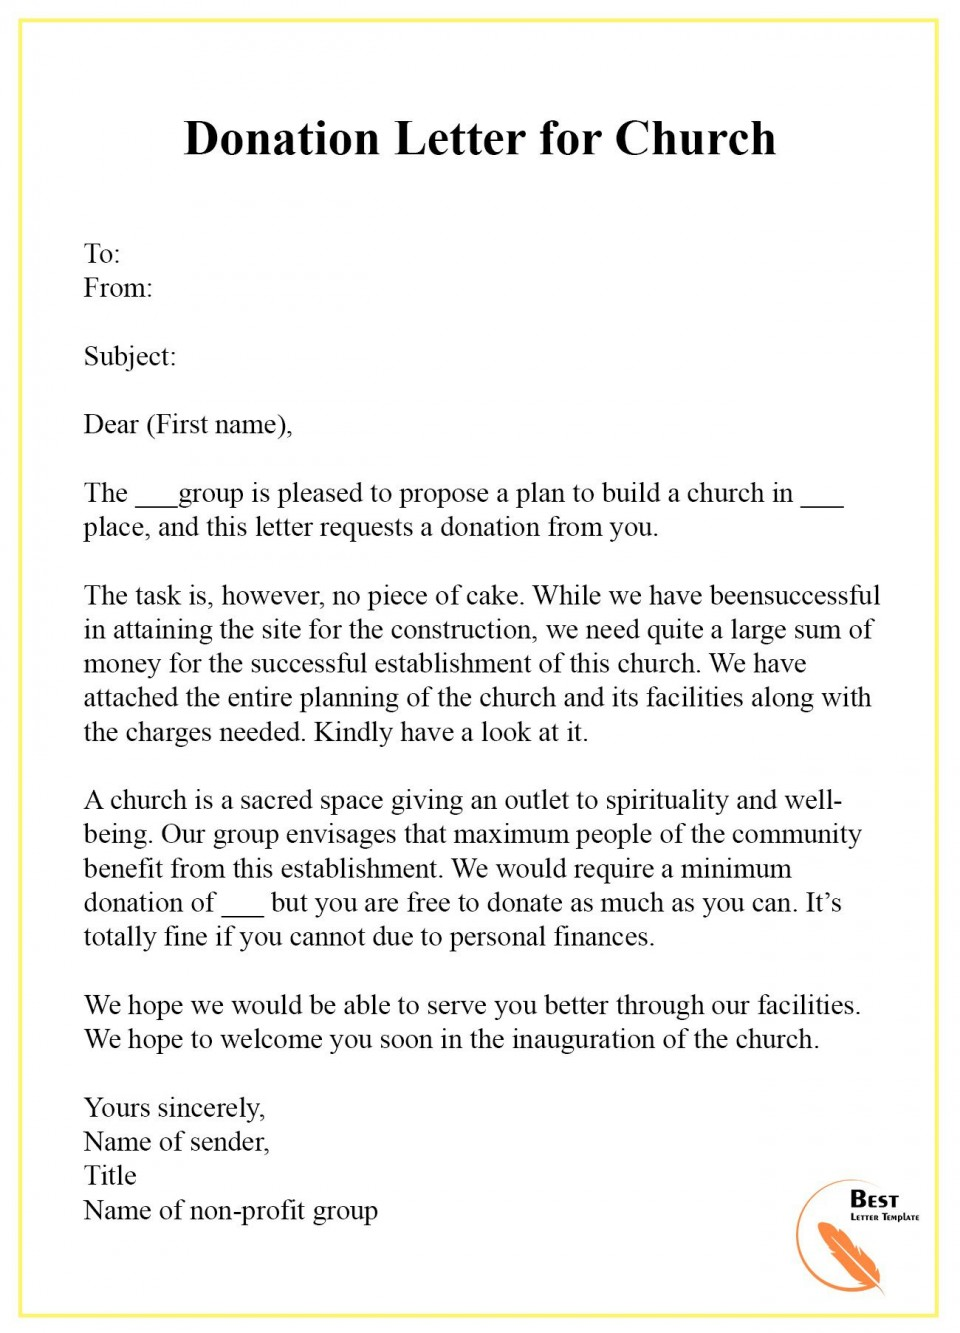 003 Amazing Fund Raising Letter Template High Definition  Fundraising For Mission Trip School Sample Of A Nonprofit Organization960